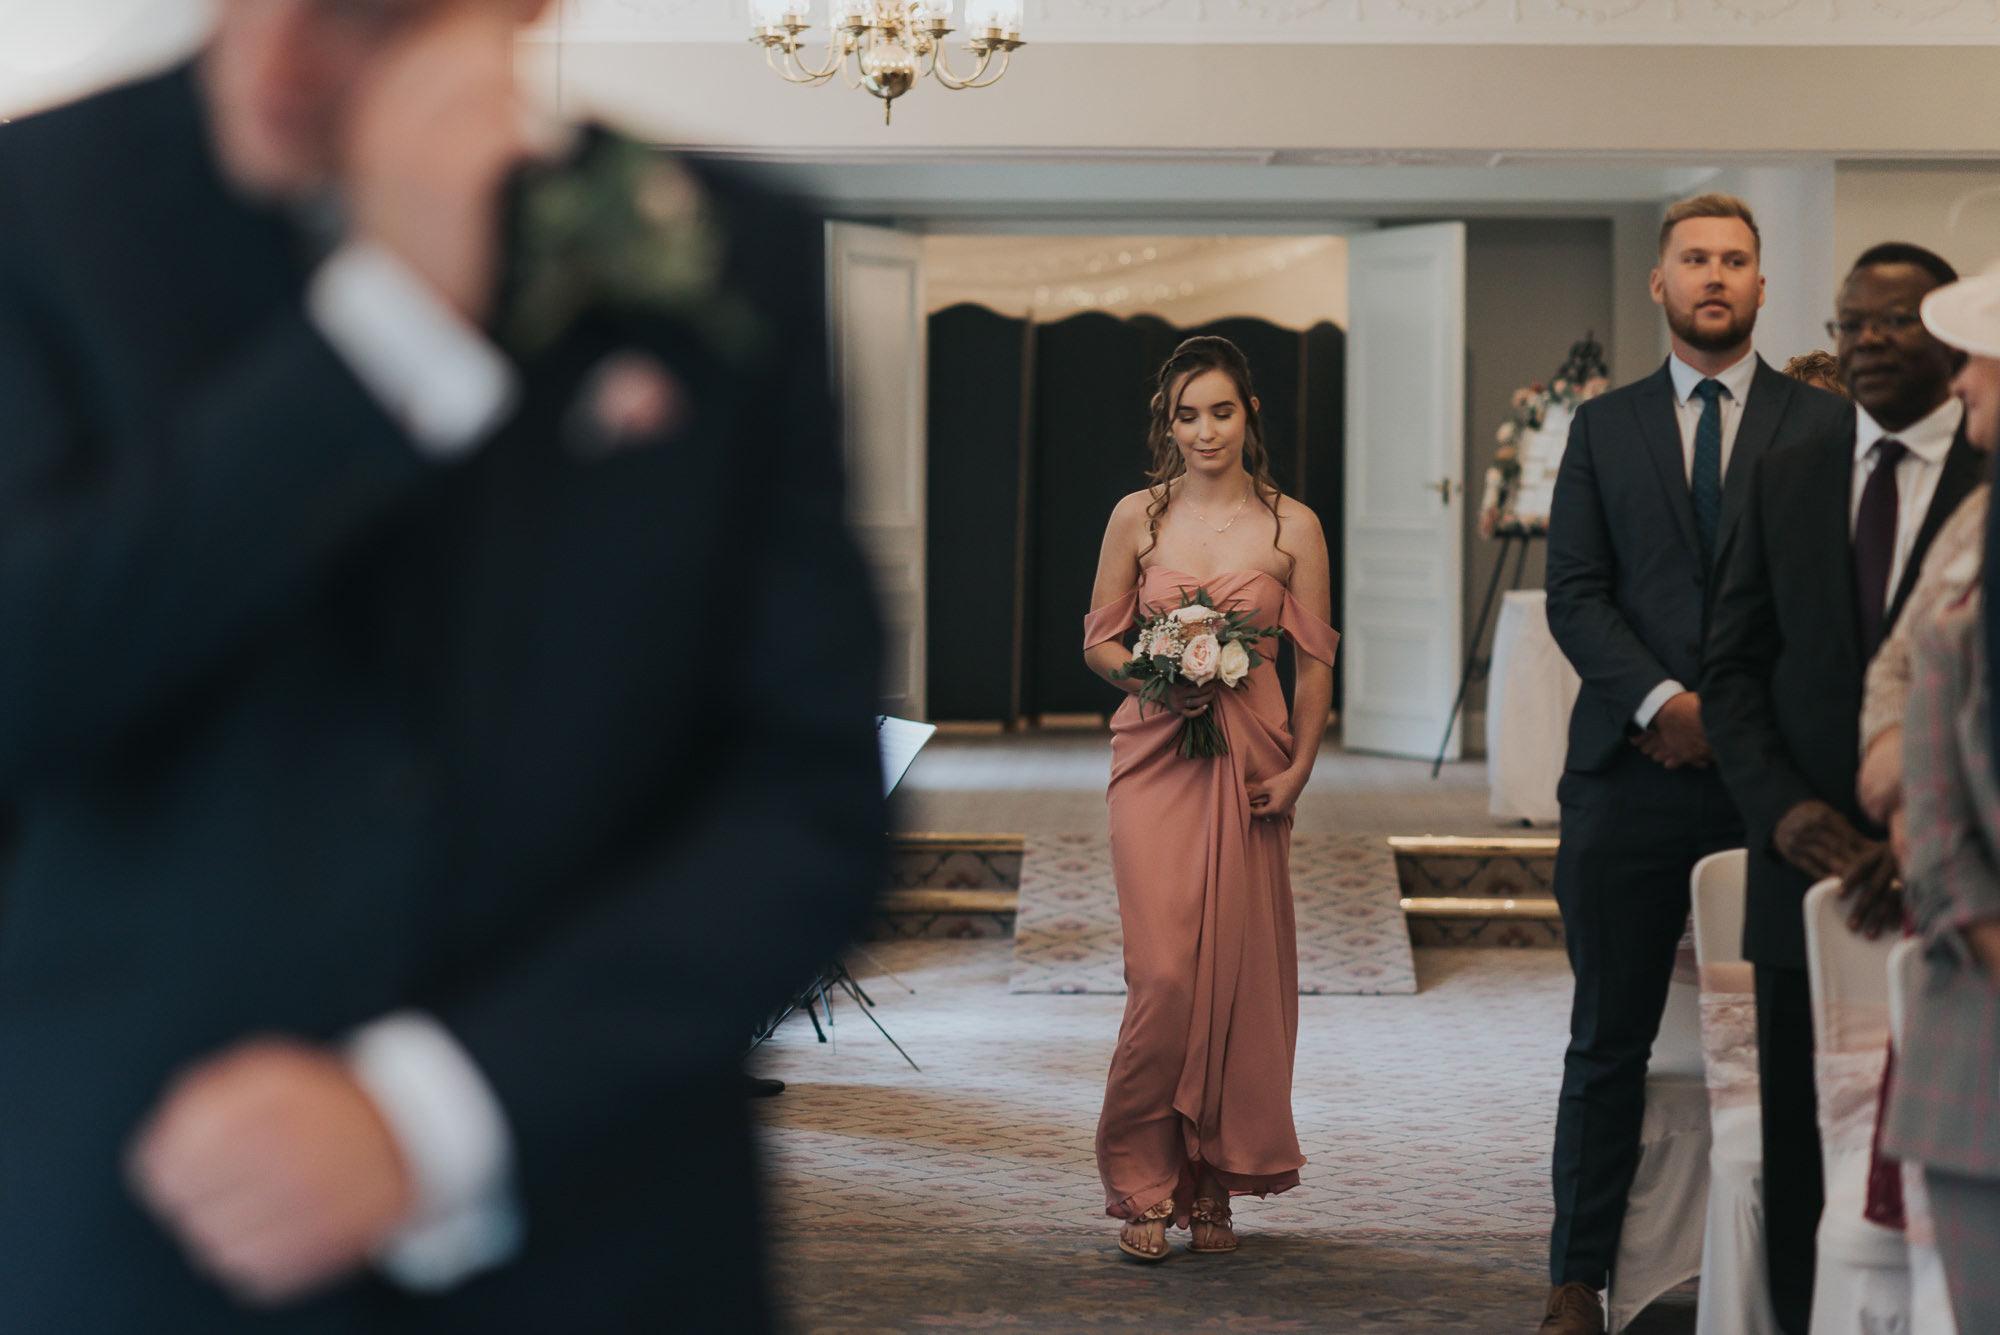 Statham lodge natural and candid wedding photography north west bested full time edding photographer adam joe roberts photography (46 of 96).jpg